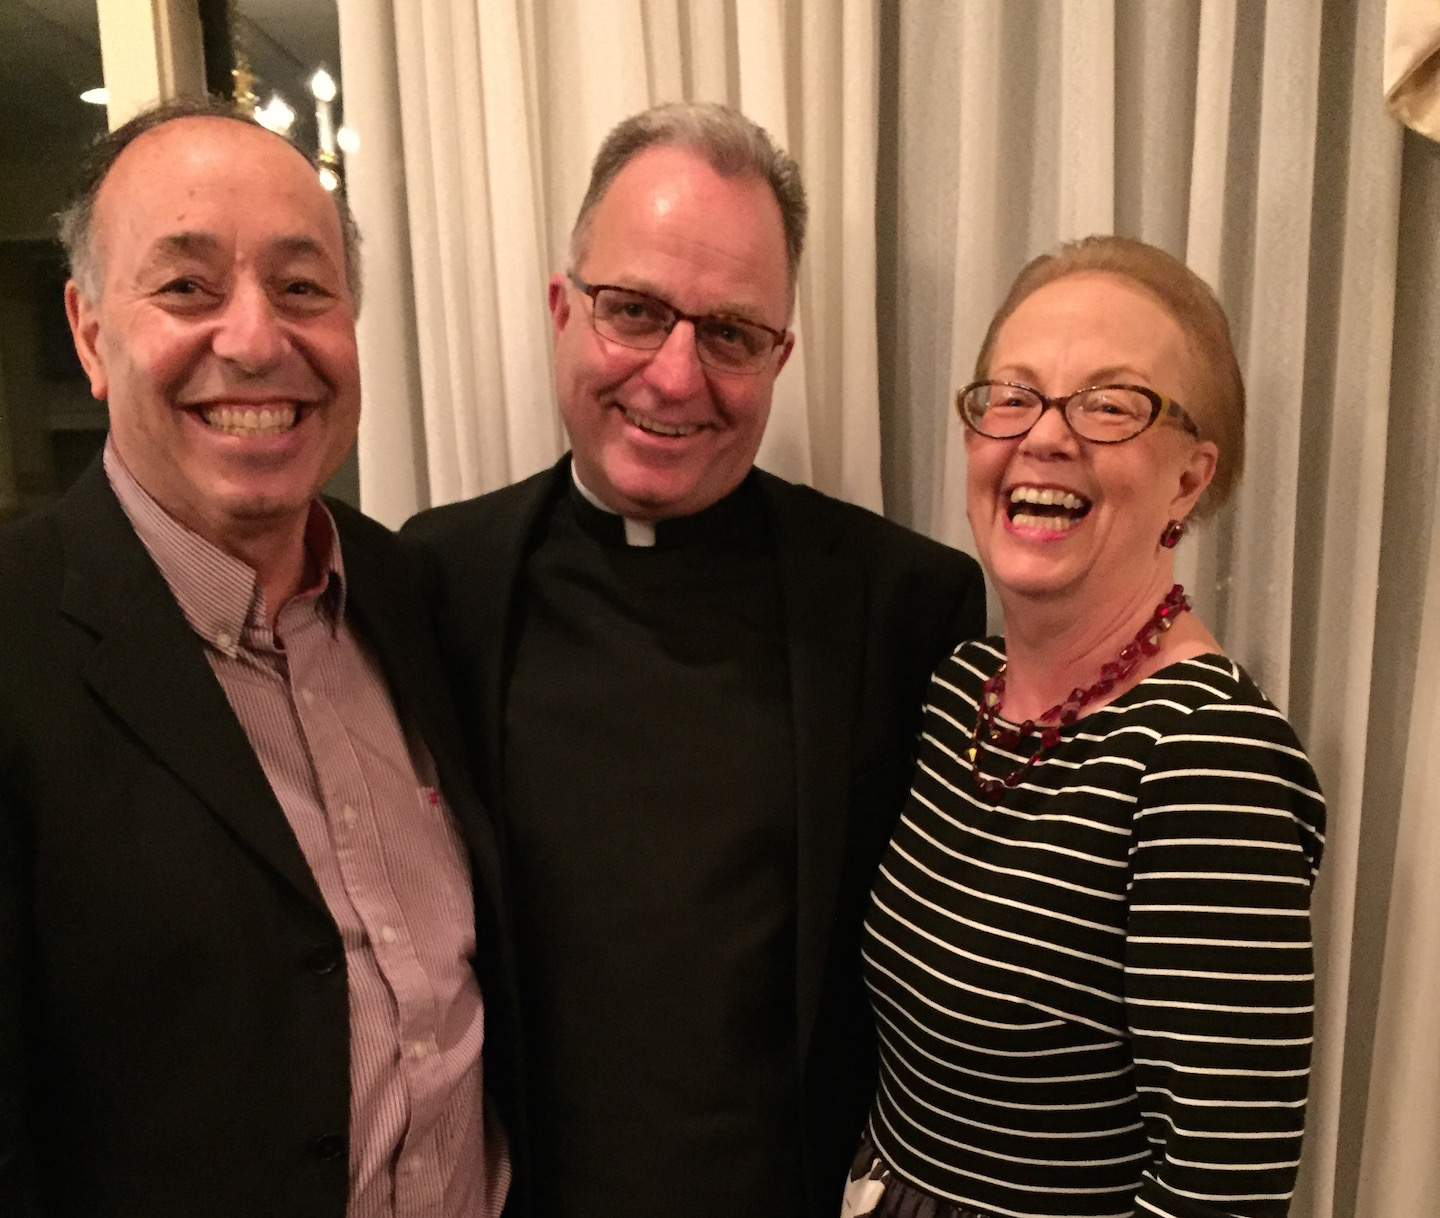 On April 16, St. Peter's R.C. School held its annual Grand Gala at the Niagara Falls Country Club. Pictured, the Rev. Monsignor David LiPuma is flanked by two of this year's honorees: Jerry (St. Peter's Class of 1958) and Maureen Castiglione of Lewiston. The couple was honored for its many years of faithful support of both the school and parish.